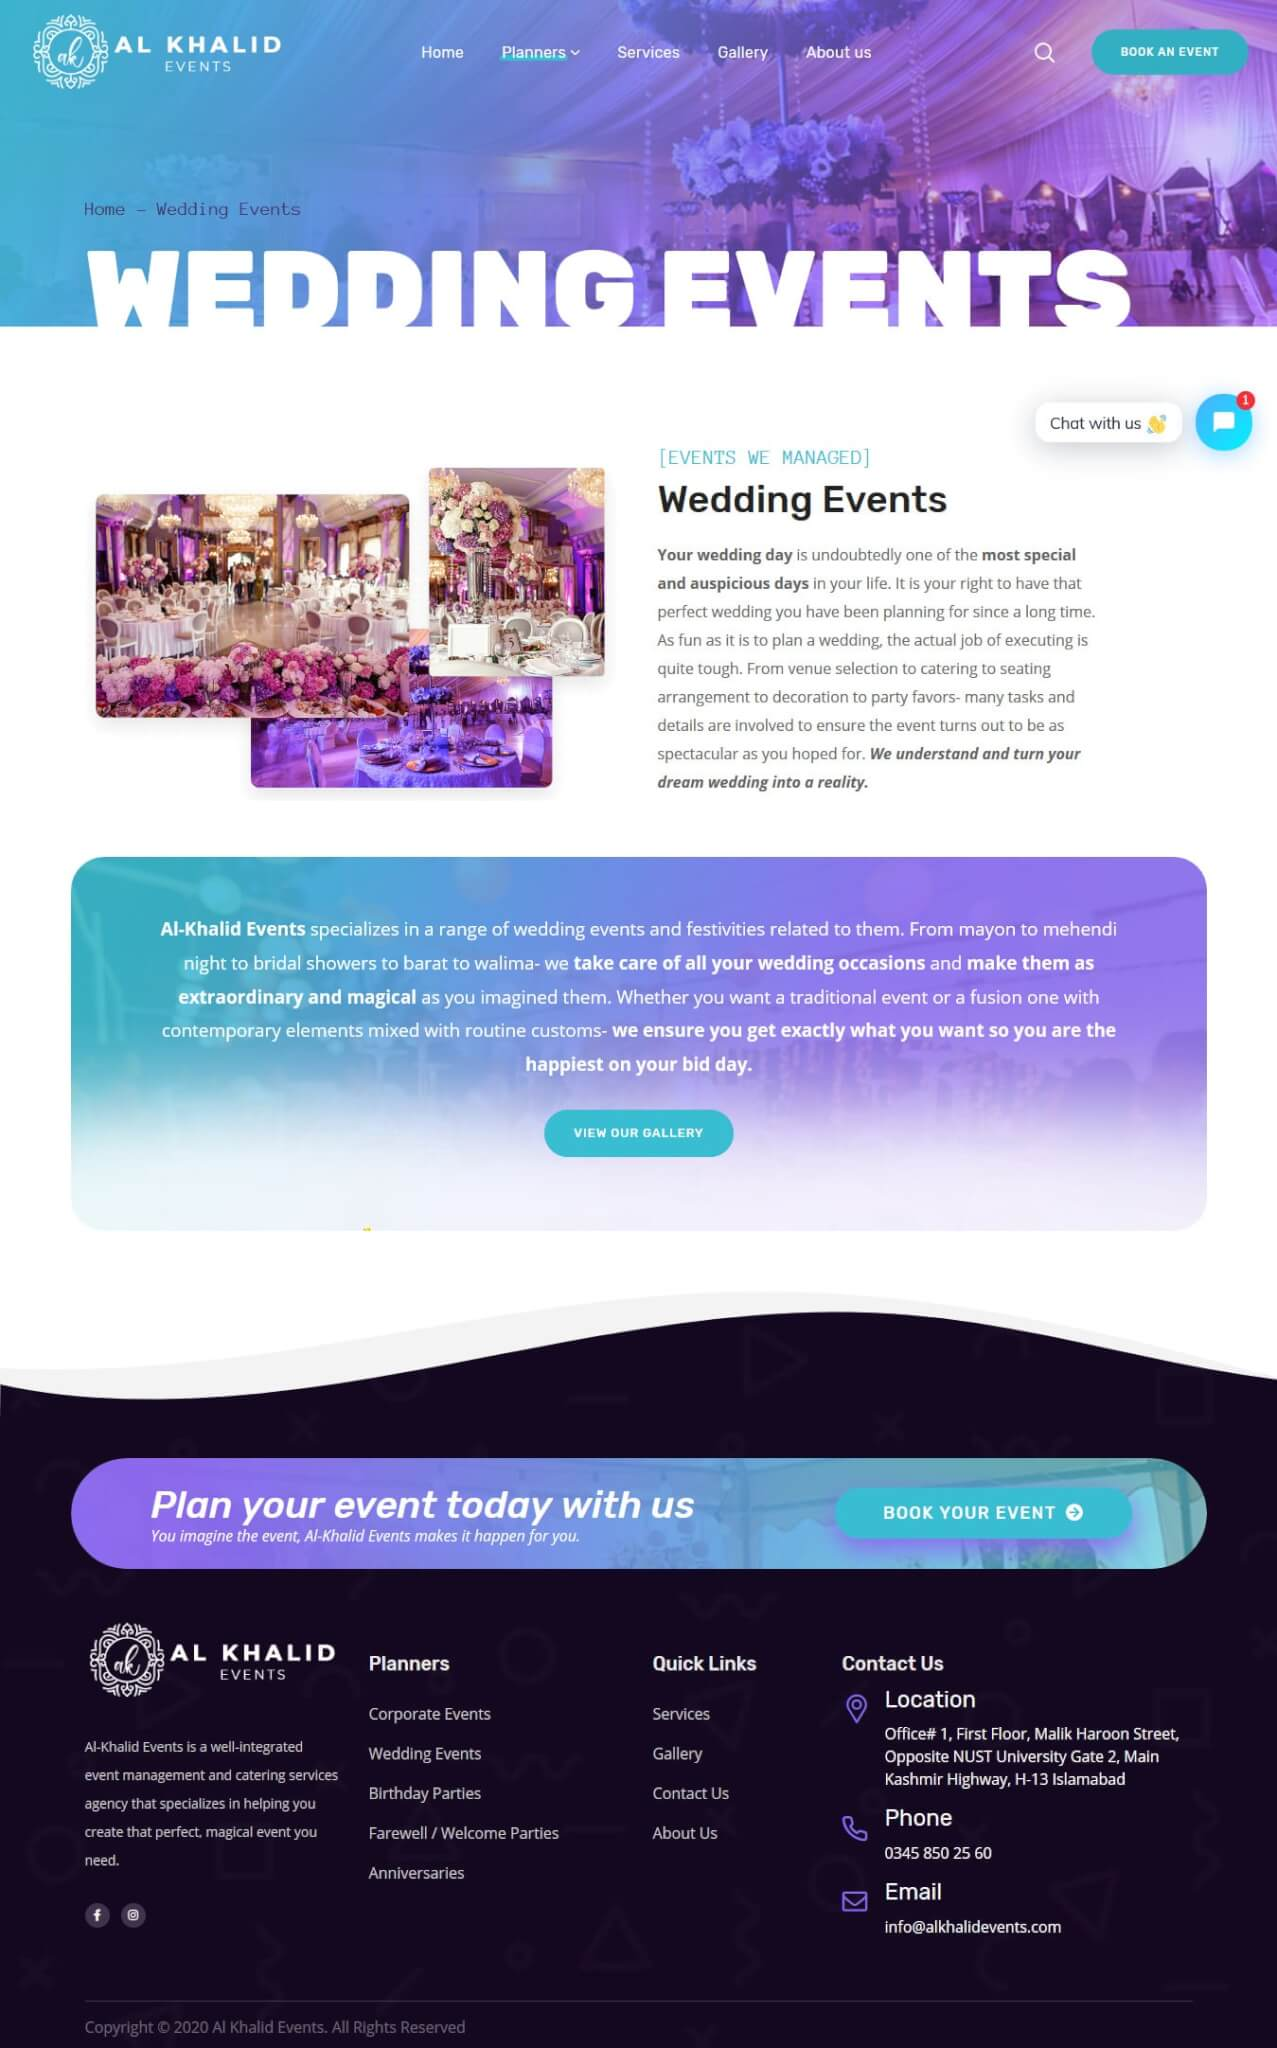 Al Khalid - Website Design and Development by Abdul Mateen